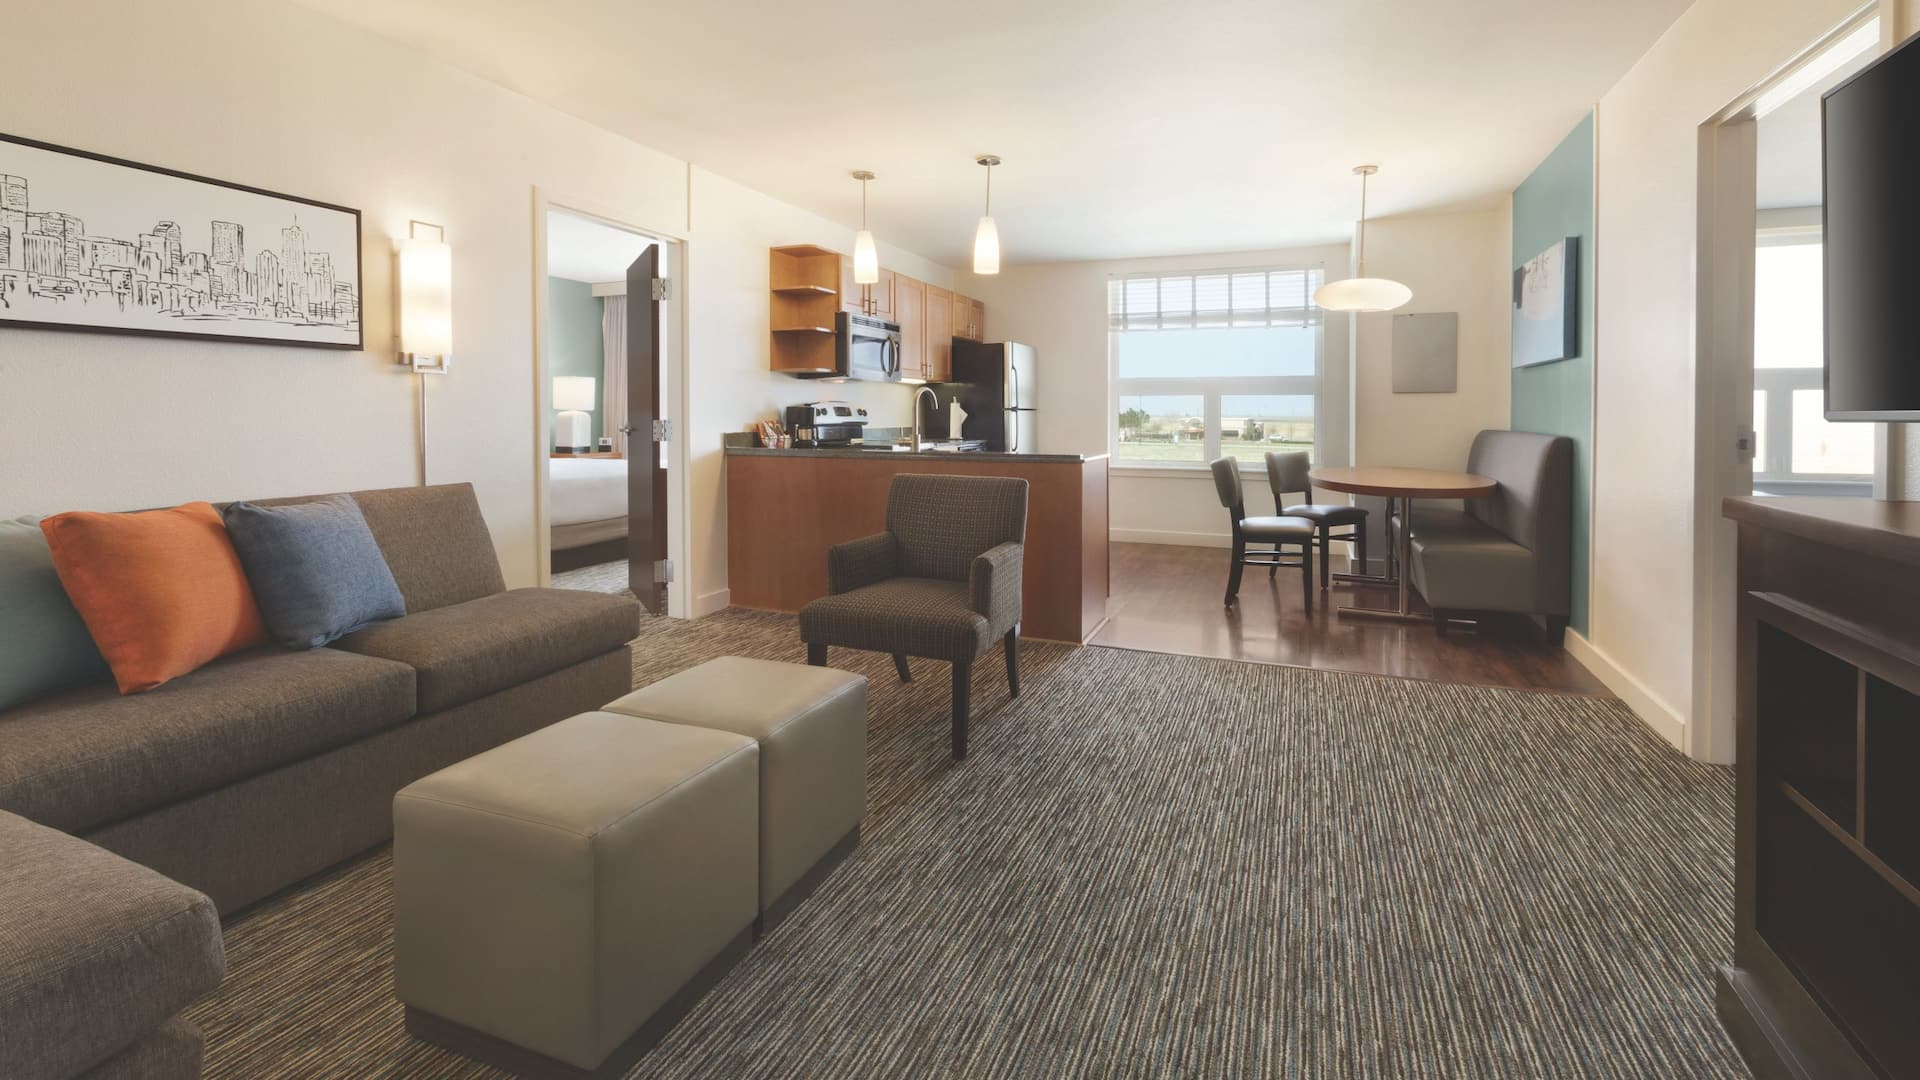 Hyatt House Denver Airport Trio Suite